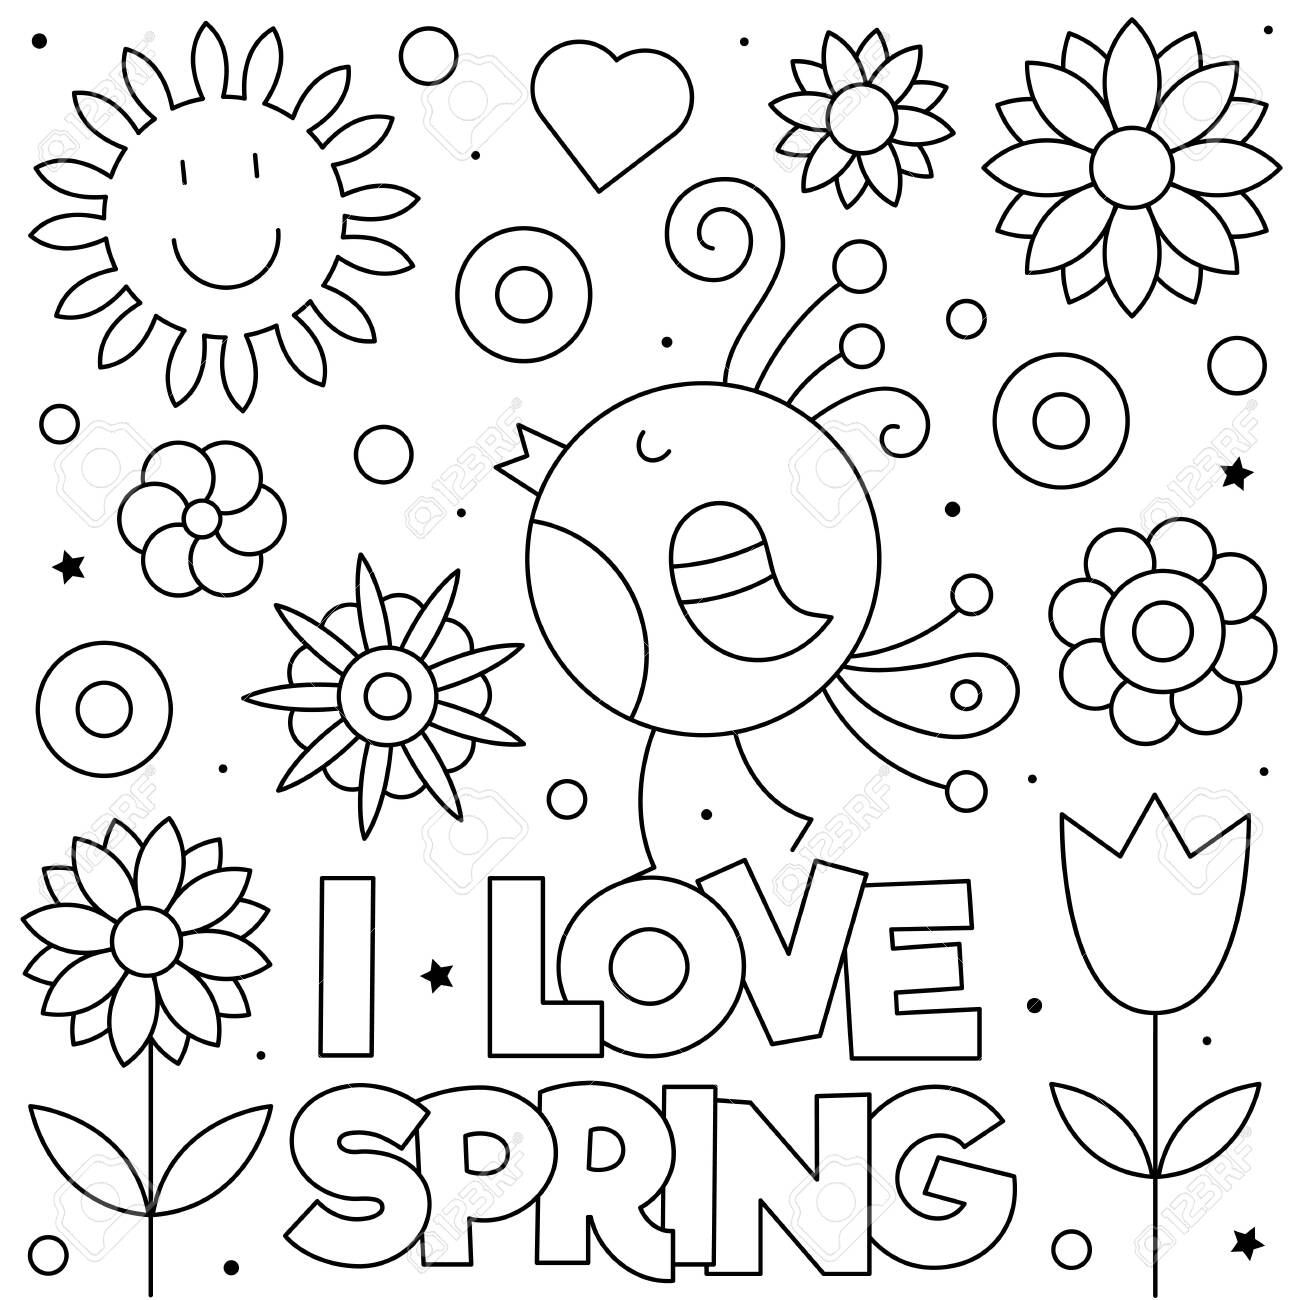 I love Spring. Coloring page. Black and white vector illustration